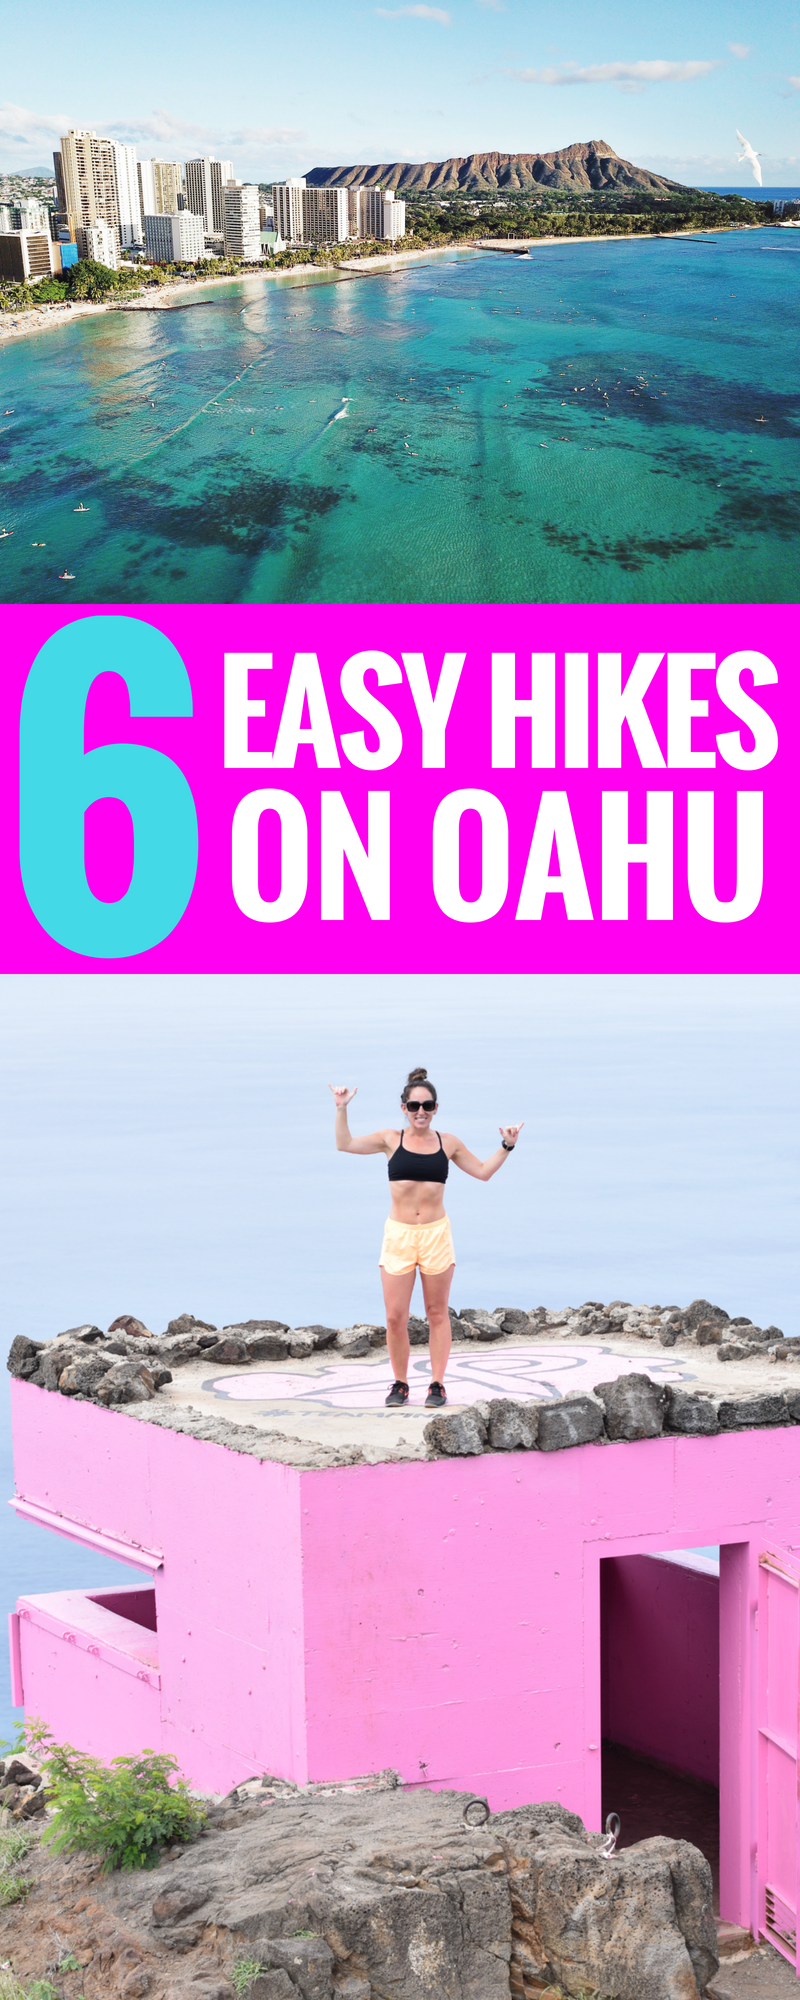 6 Easy Hikes On Oahu - Hiking In Hawaii - Oahu Hikes - Where to hike on Oahu - Hawaii Itinerary - Travel Tips for Hawaii - Hawaii Vacation - Hiking Tips - Communikait by Kait Hanson